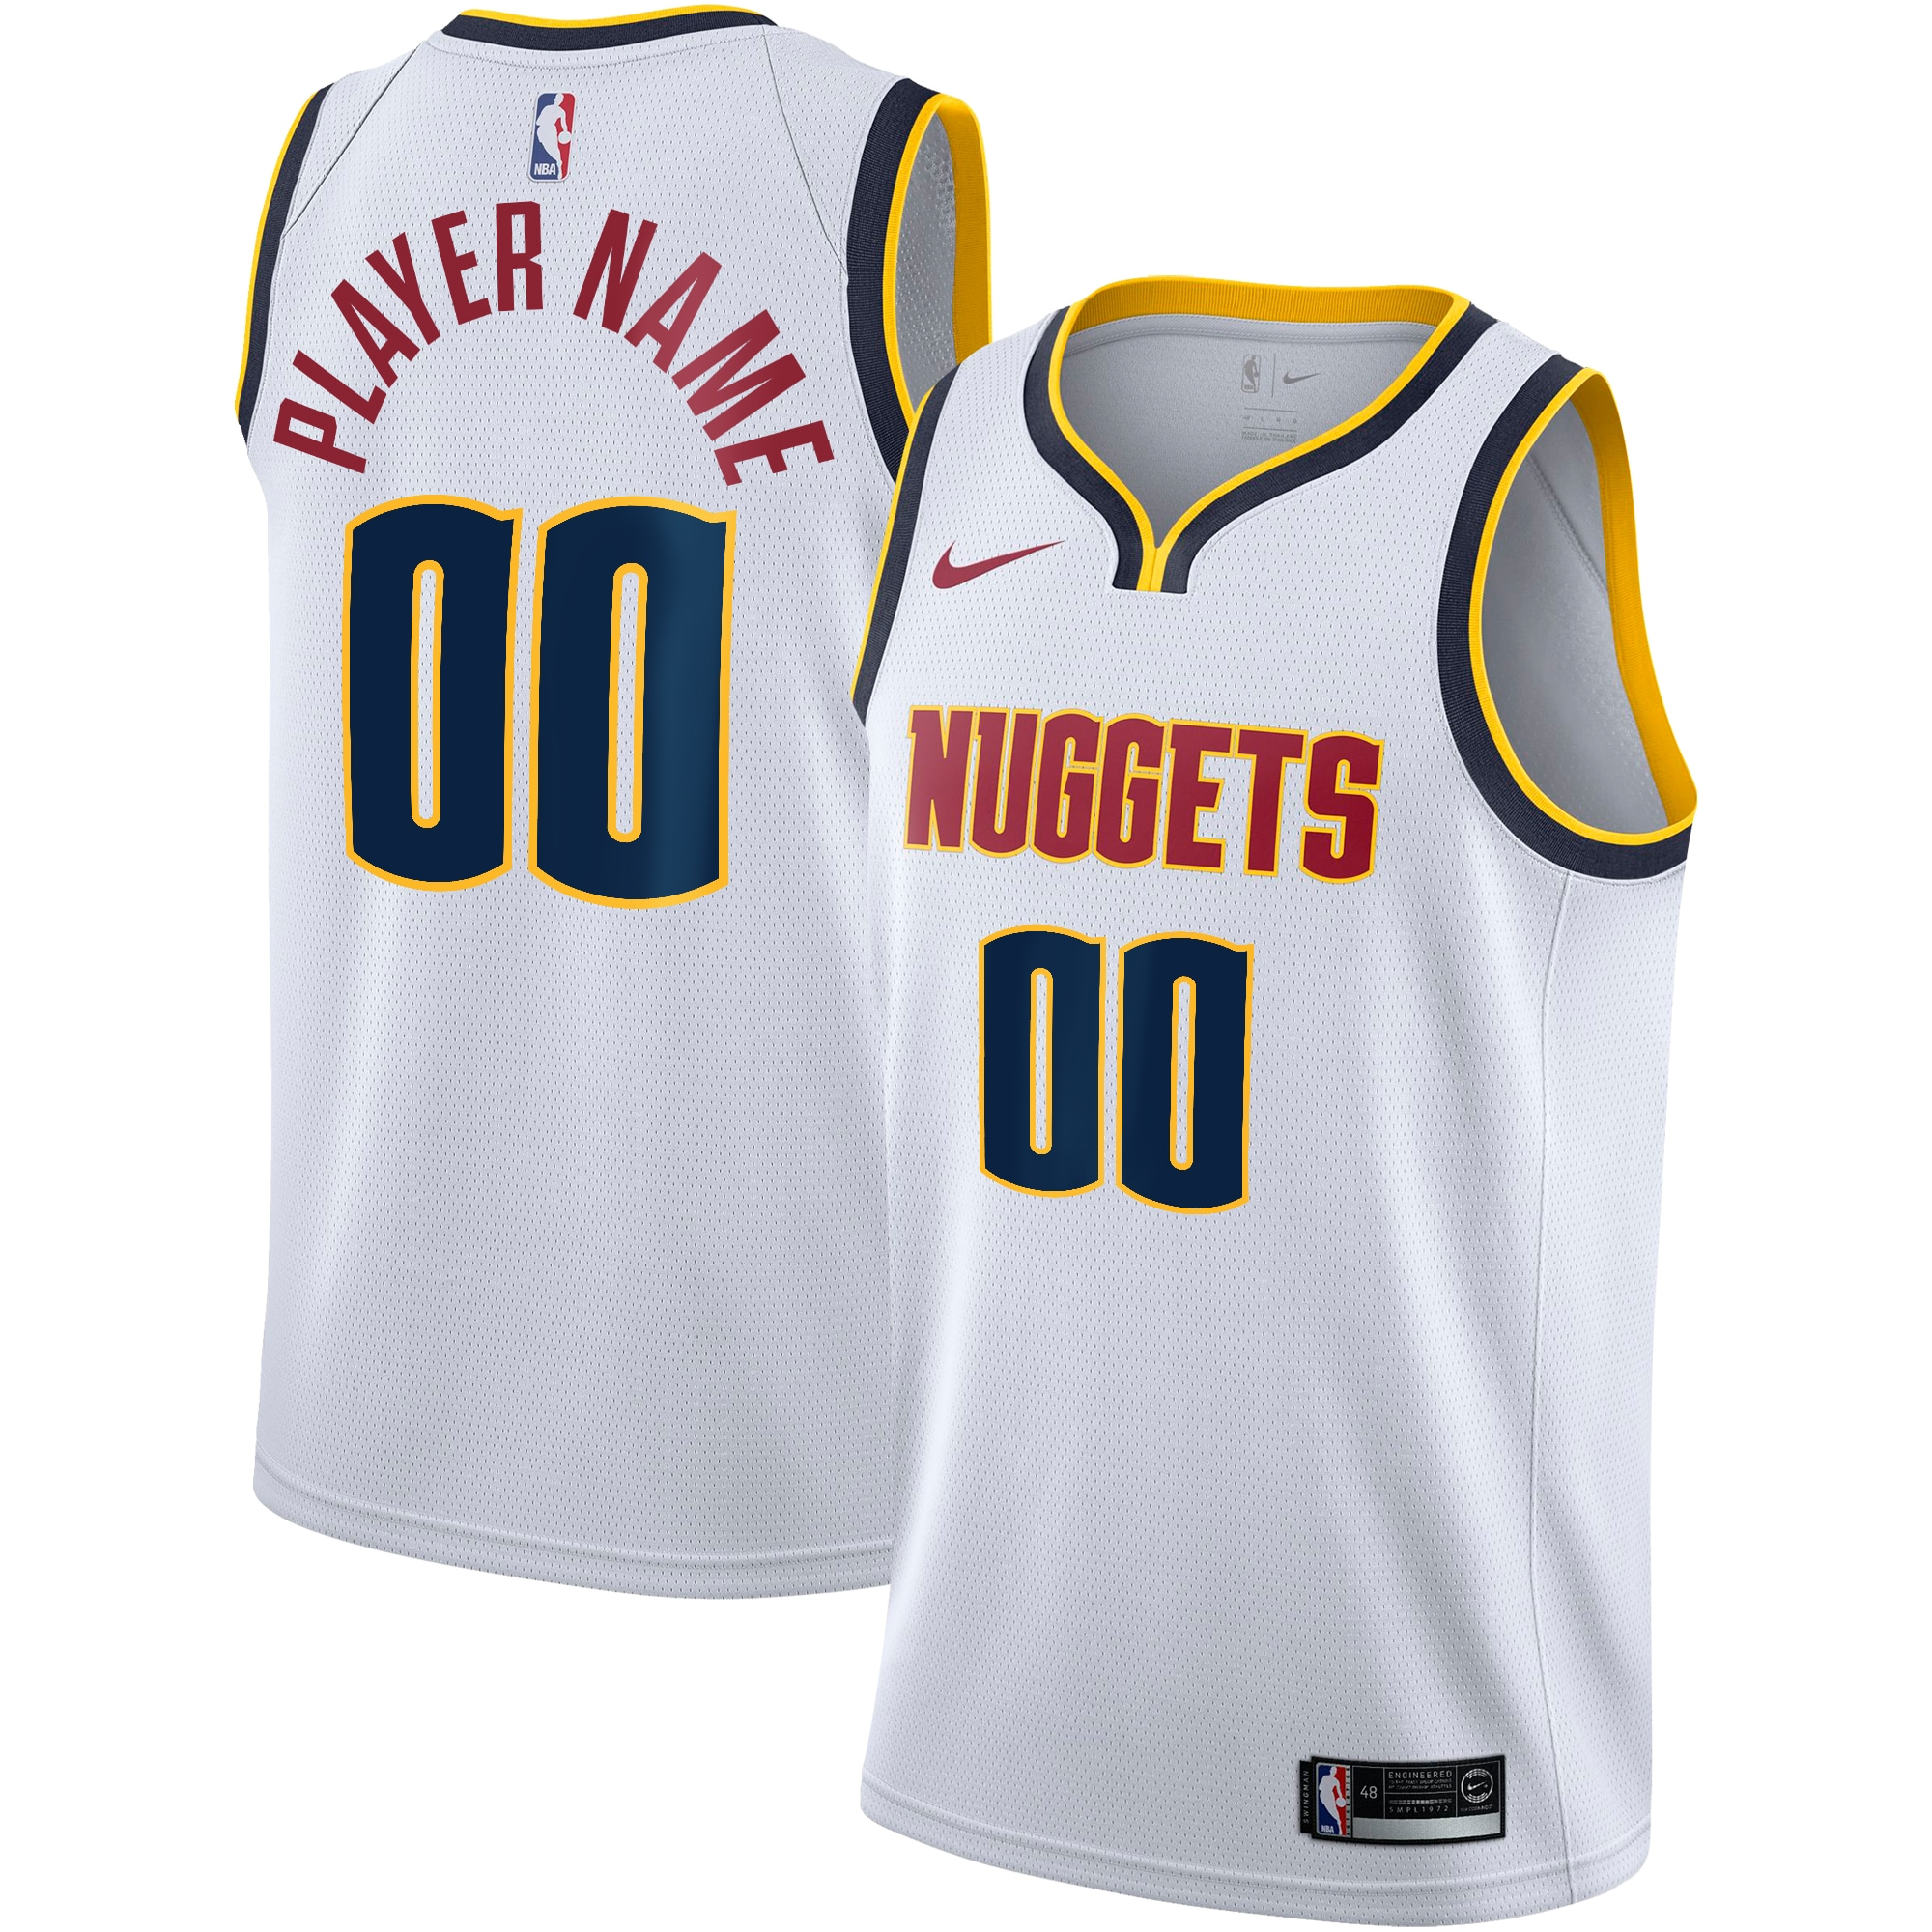 Denver Nuggets Nike Swingman Custom Jersey - Association Edition - White